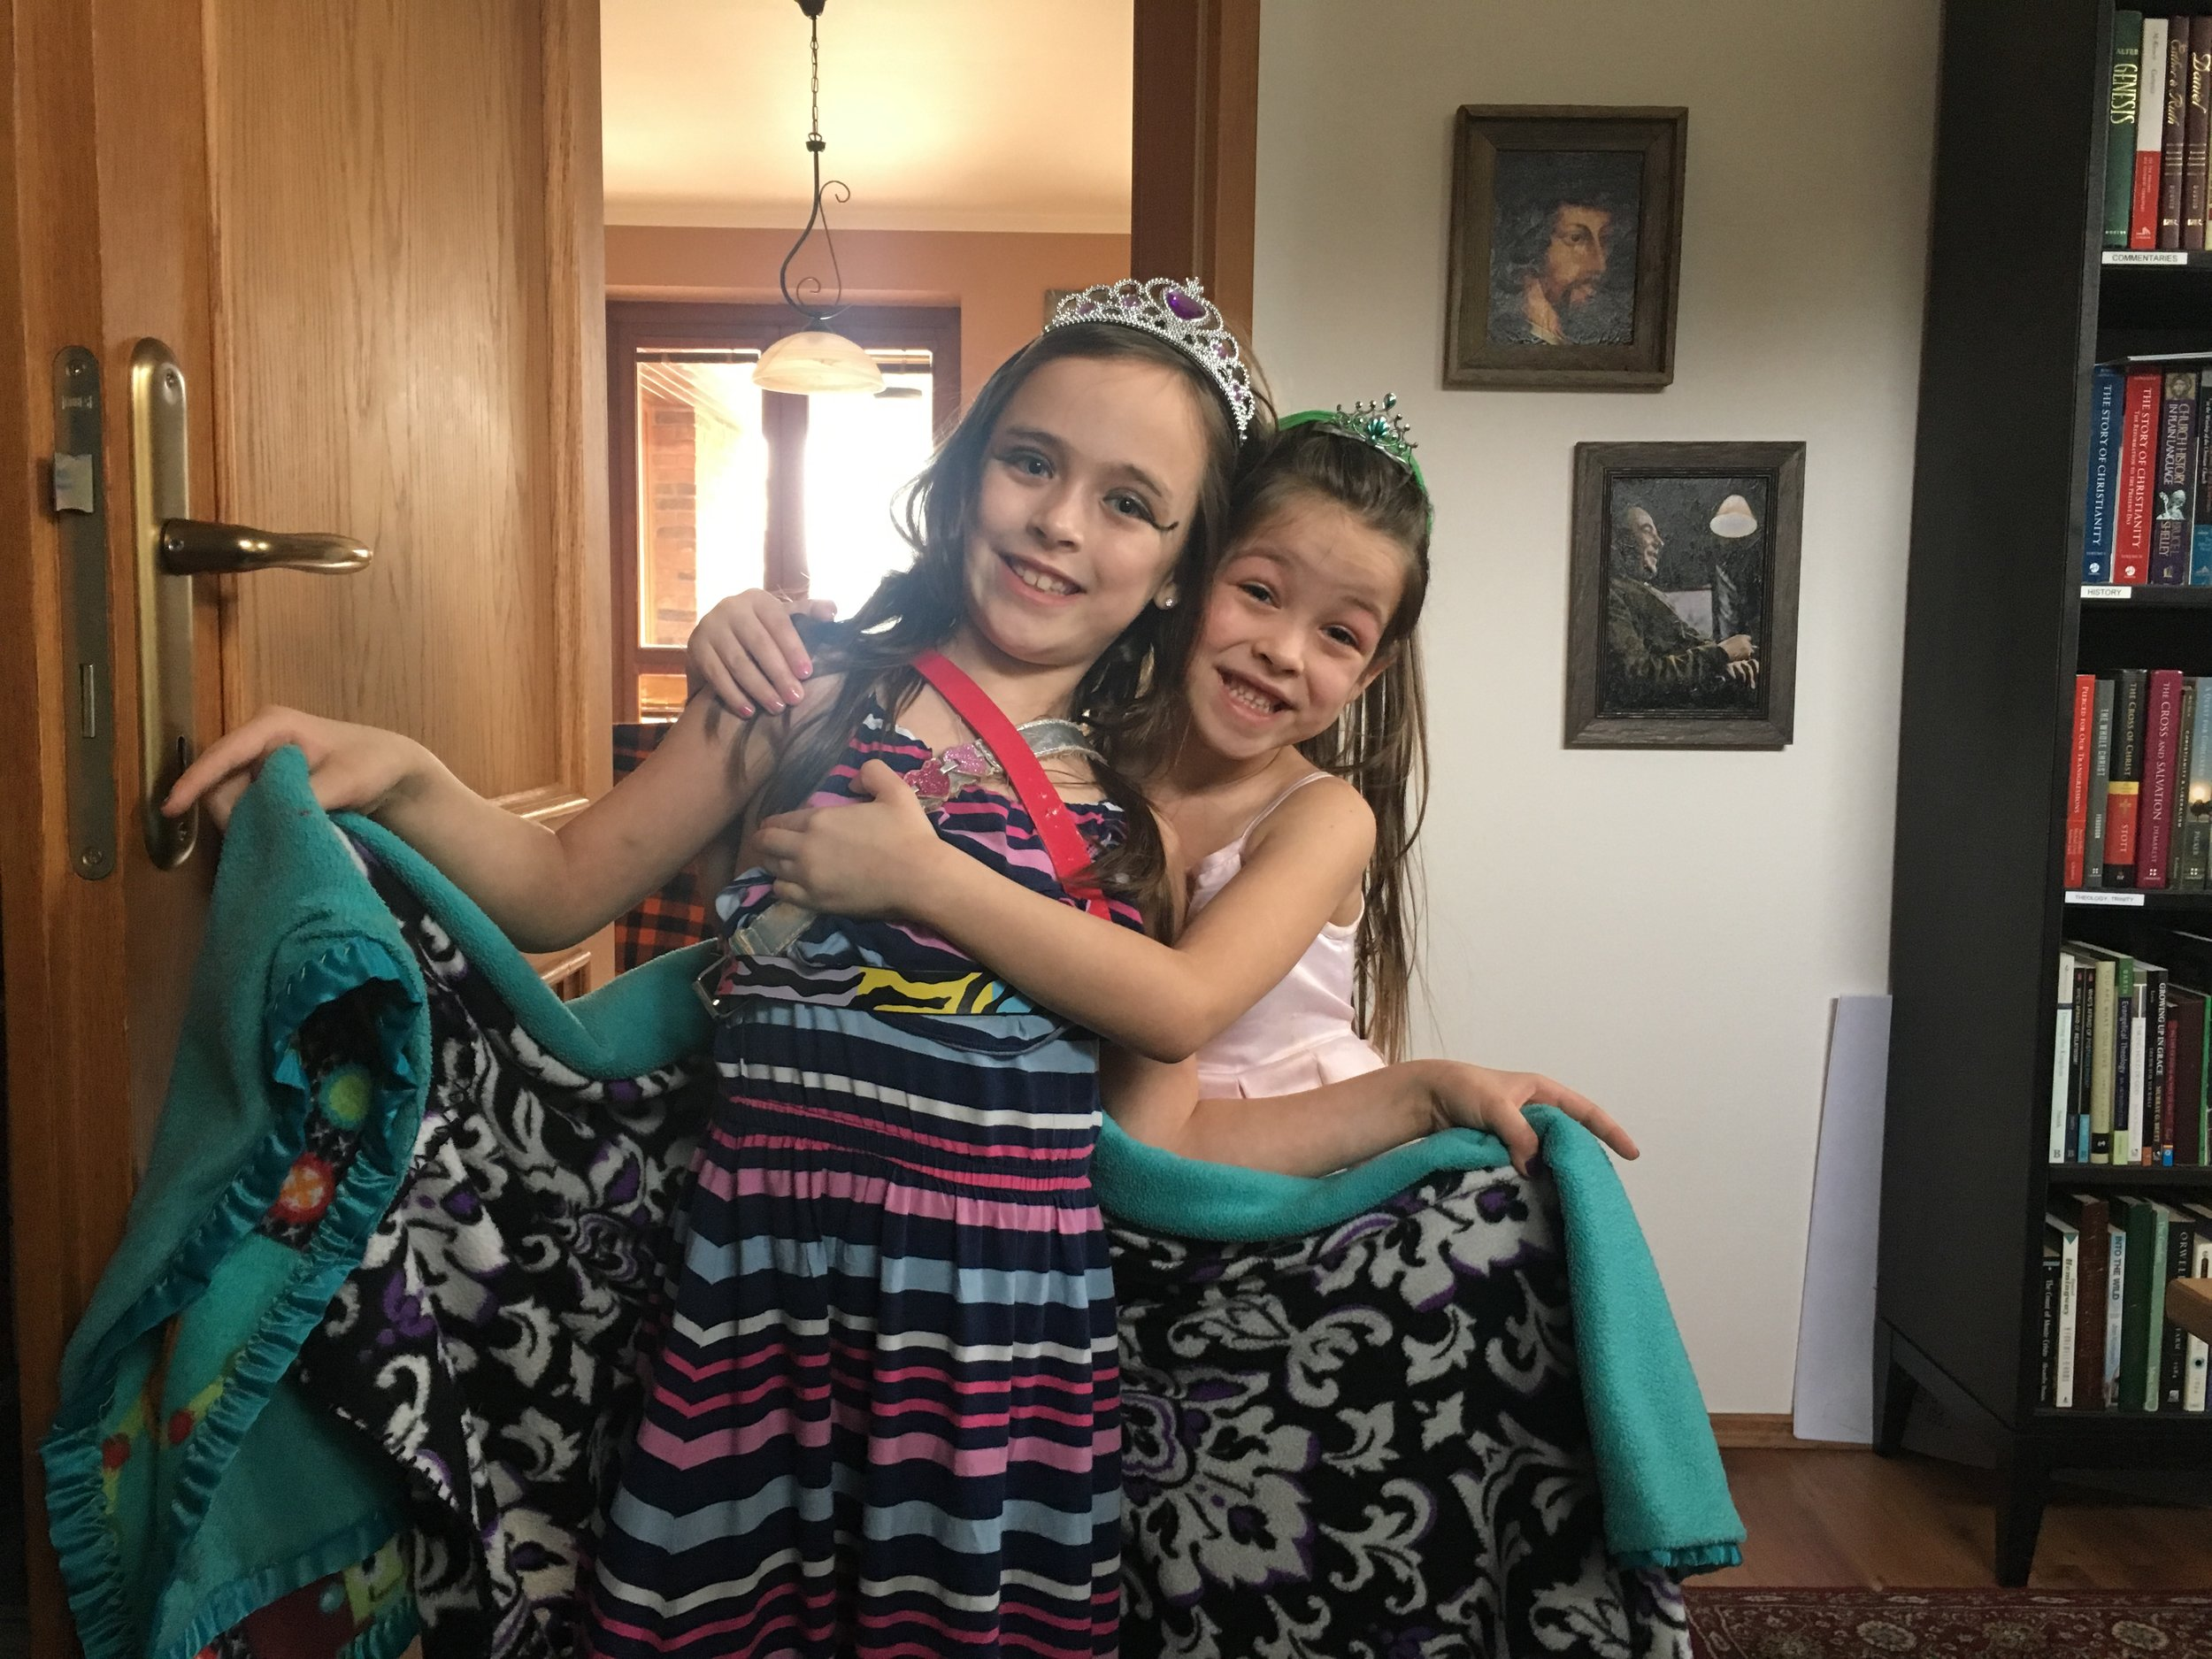 Addey and Nora dressing up as princesses for a special event at their school.